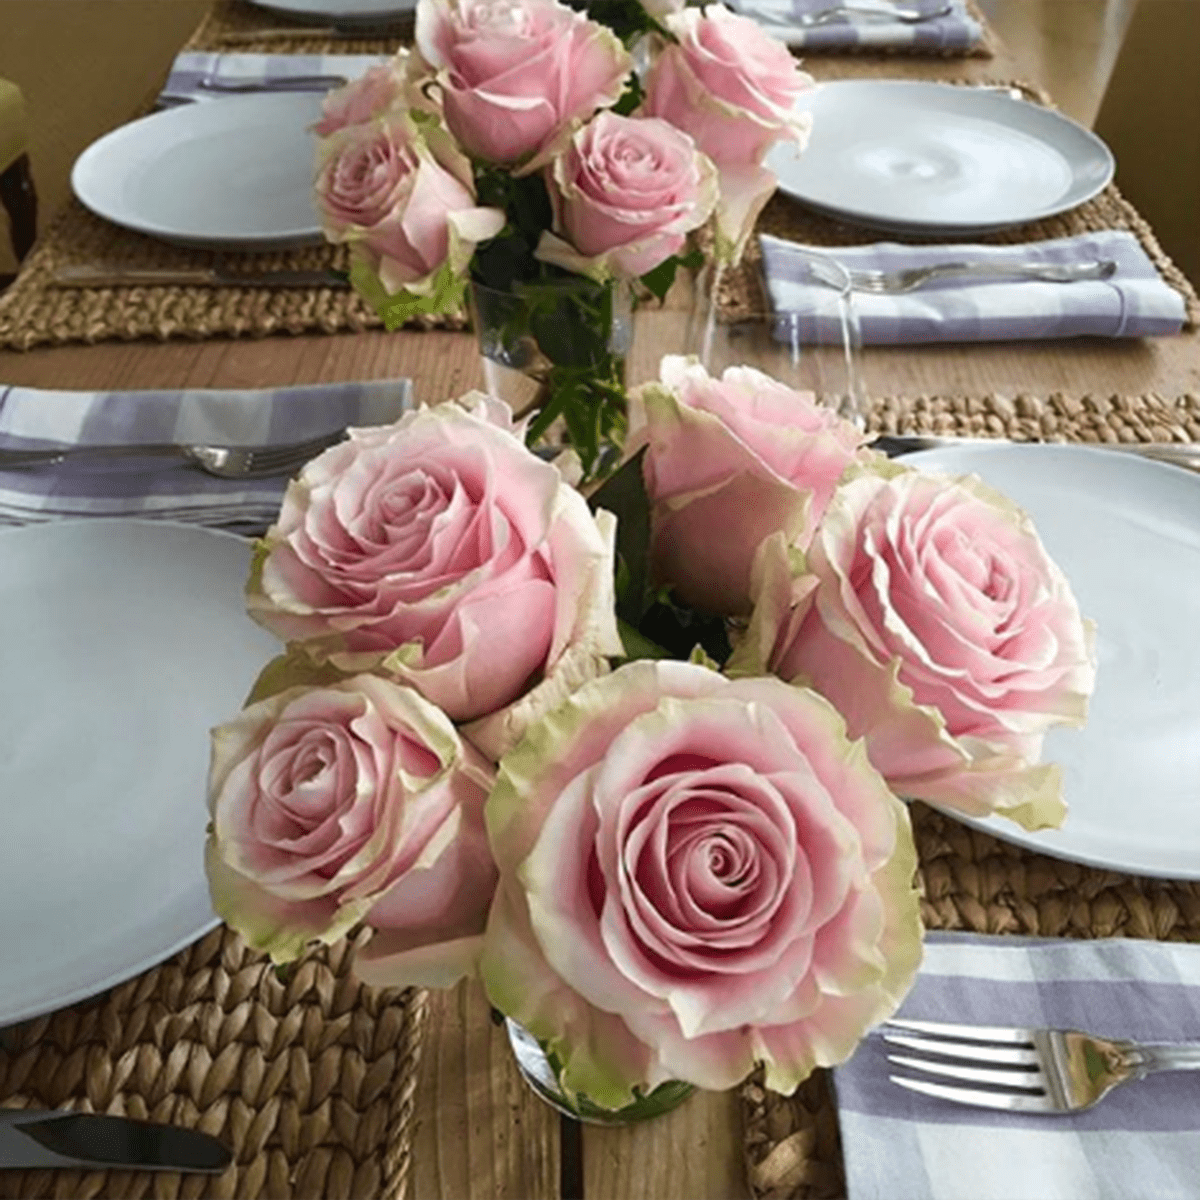 Table with rose centerpieces